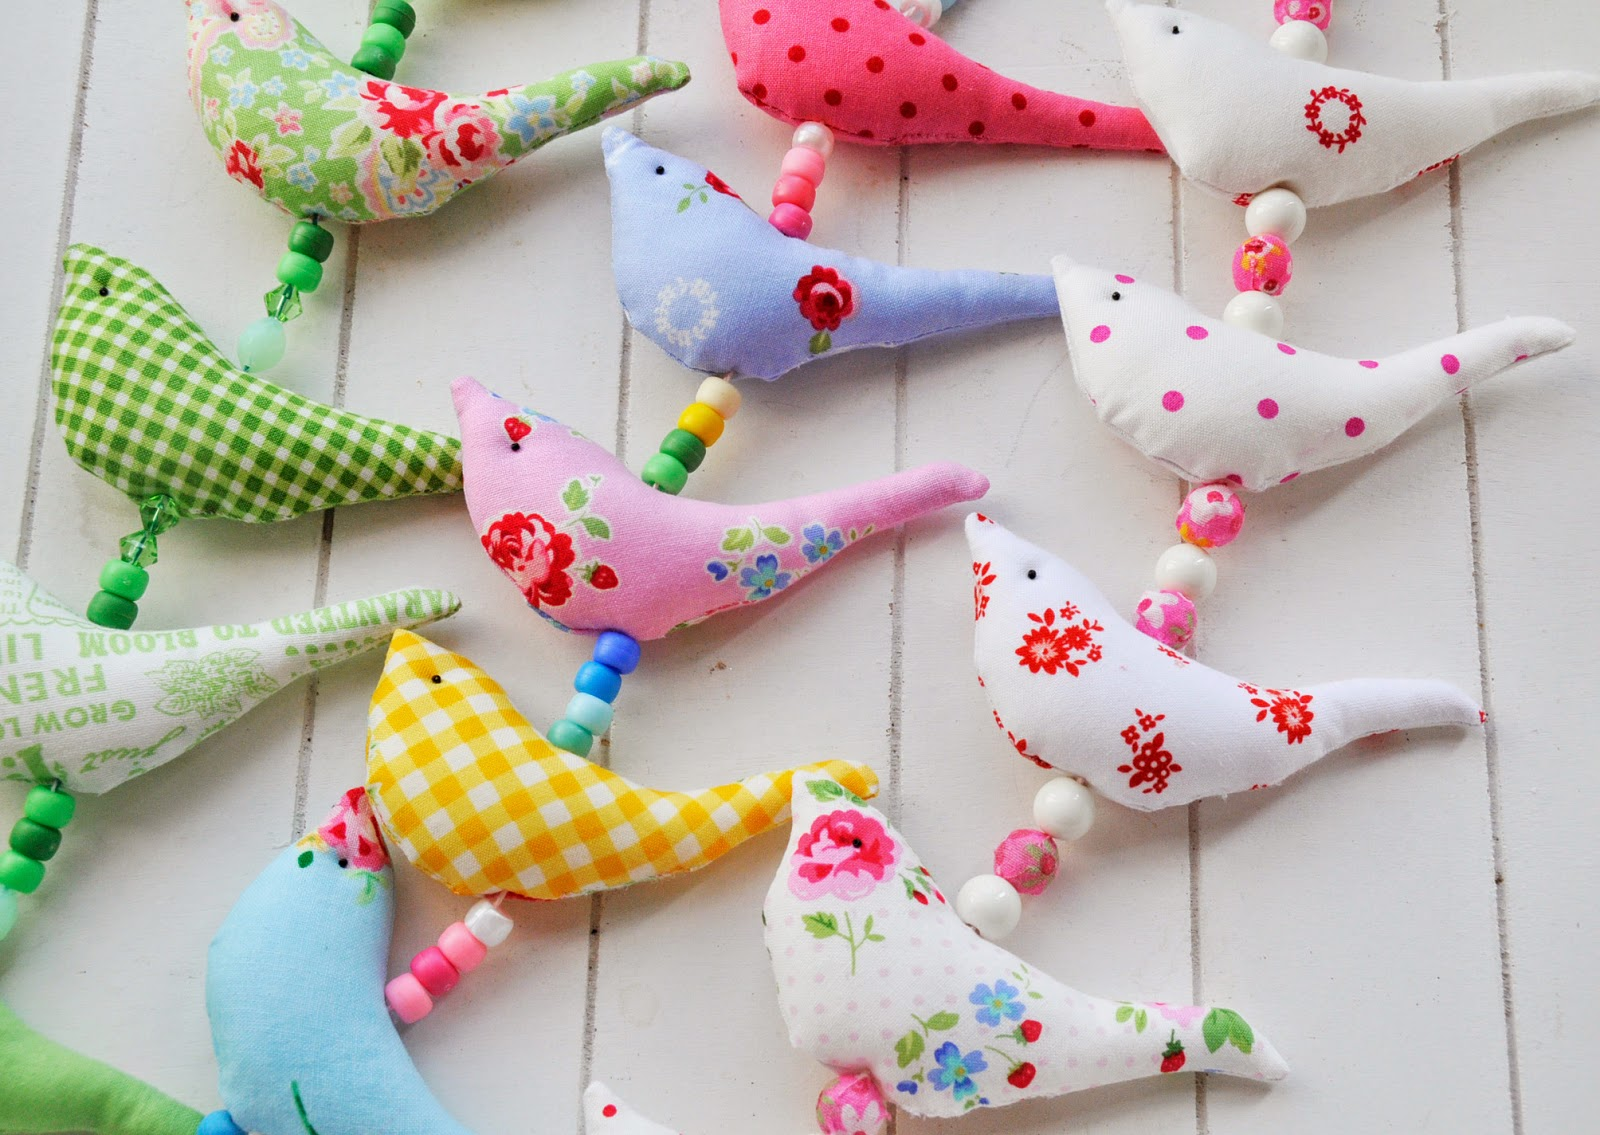 Spring Crafting and a Giveaway до 11 апреля